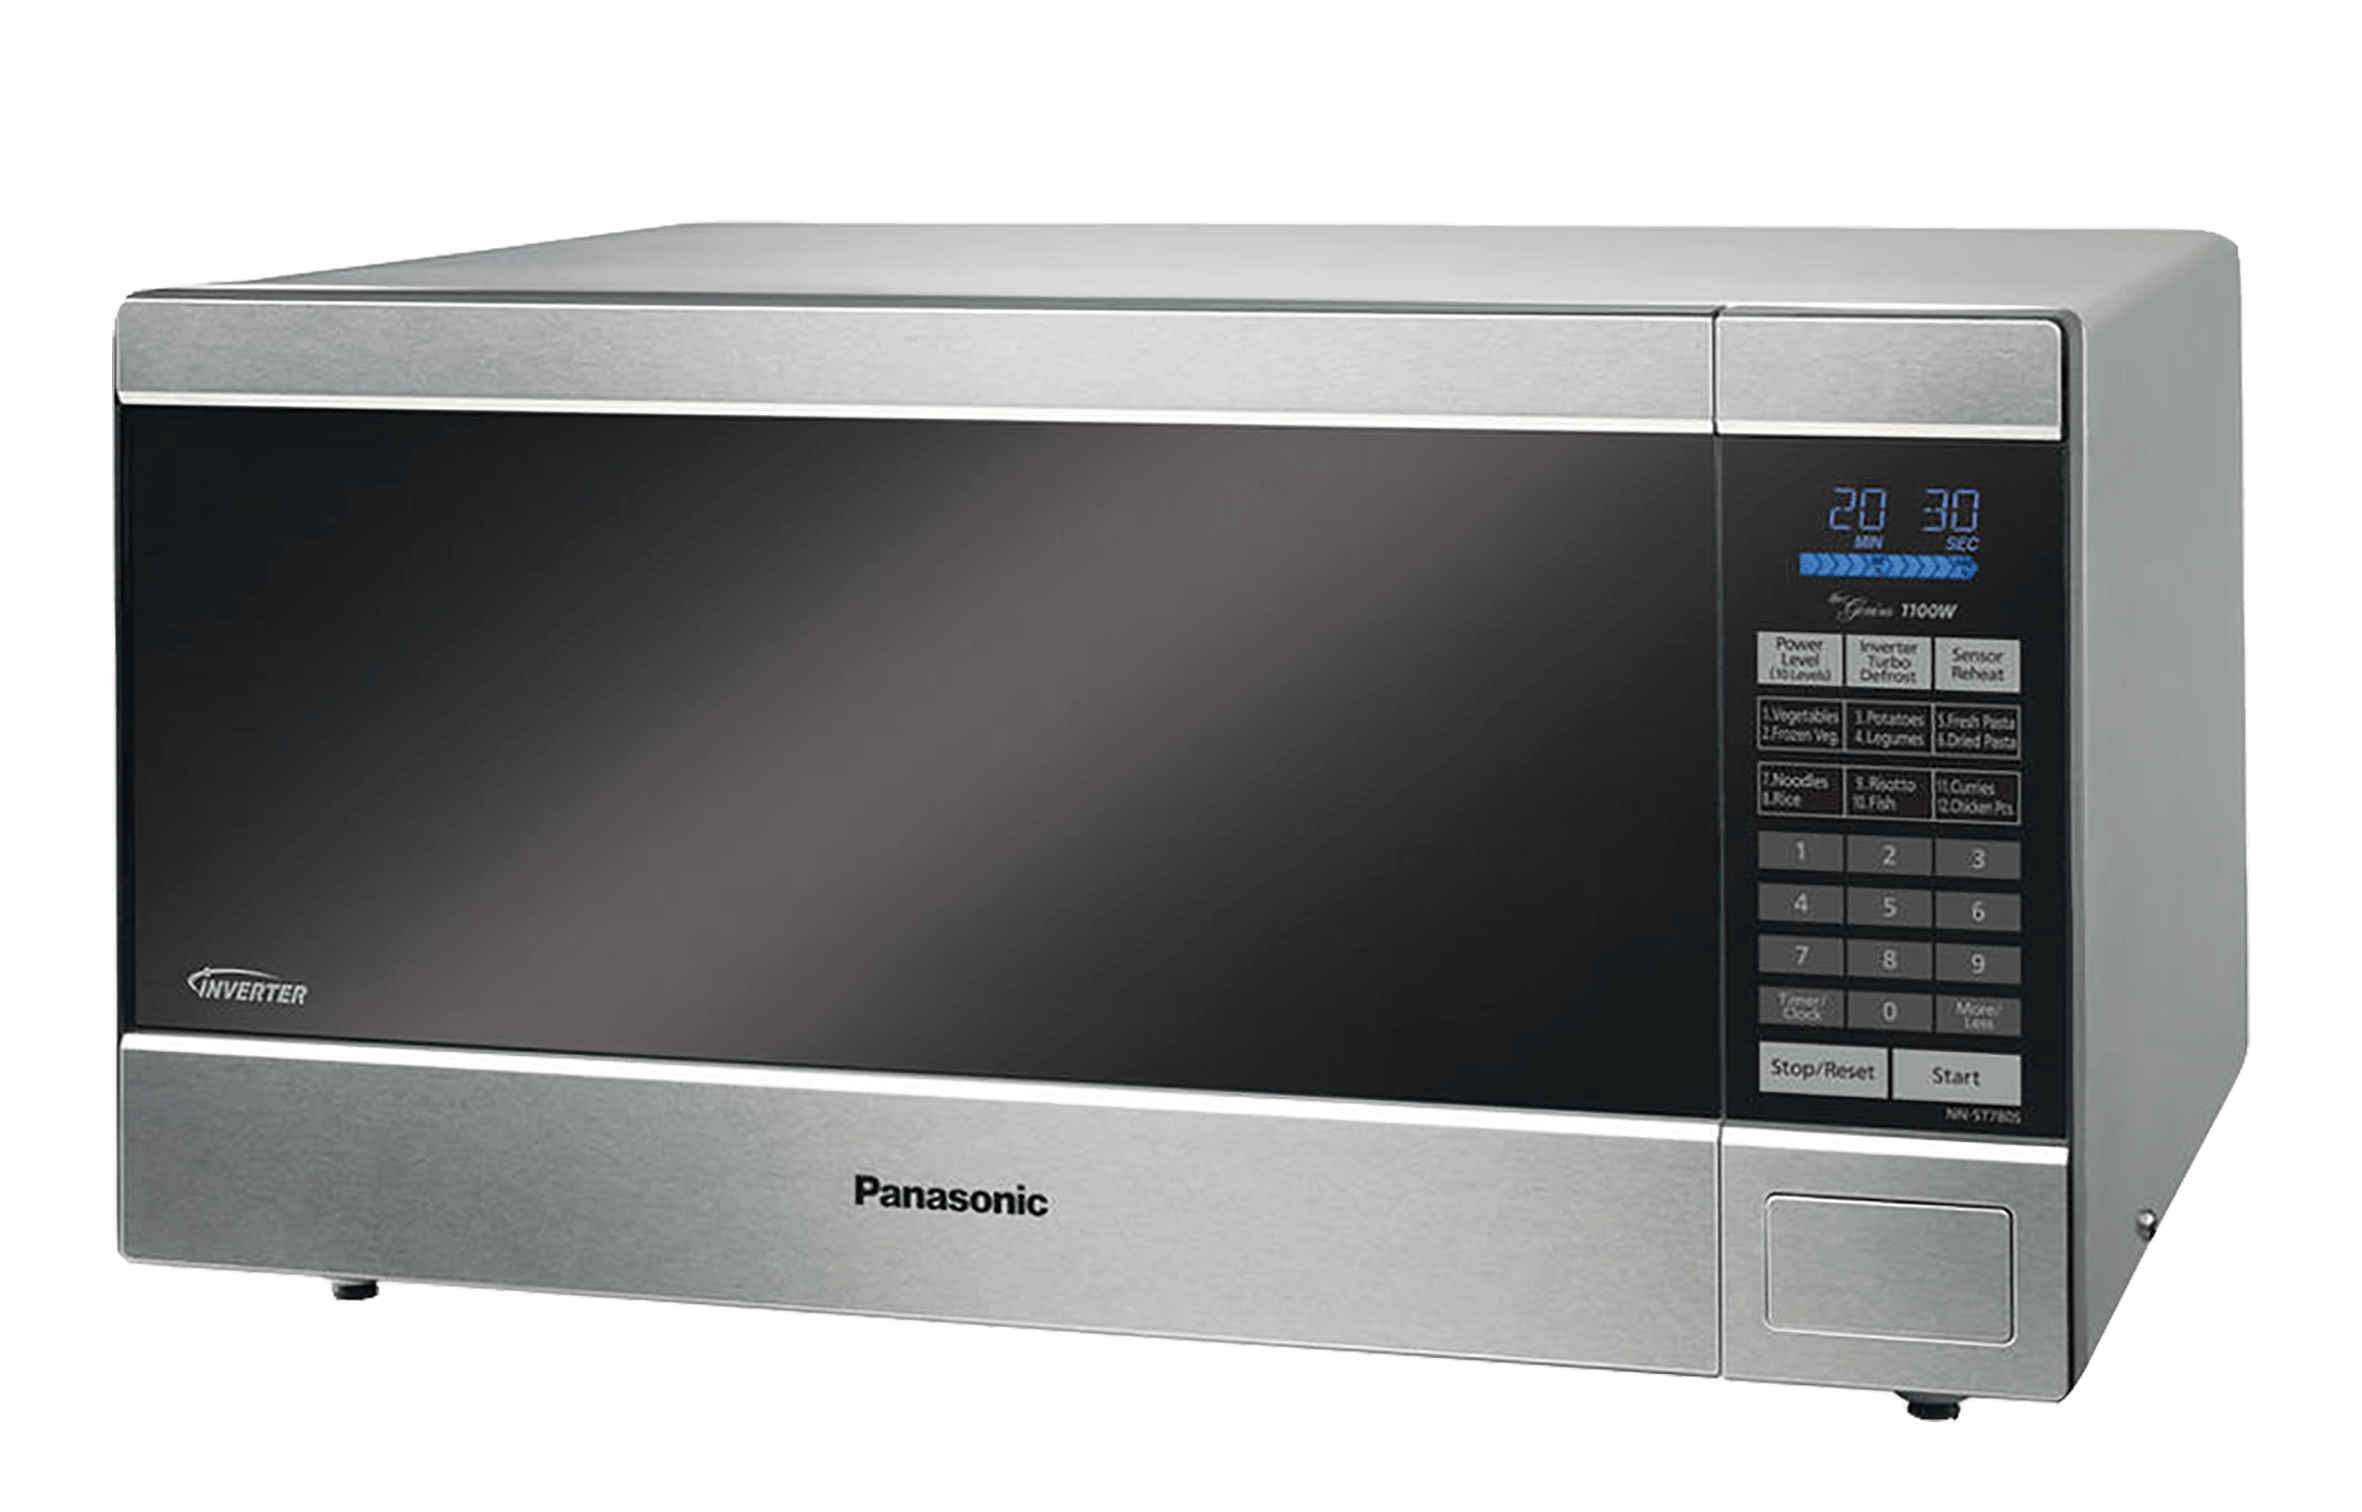 Who Sells Panasonic Microwaves Bestmicrowave